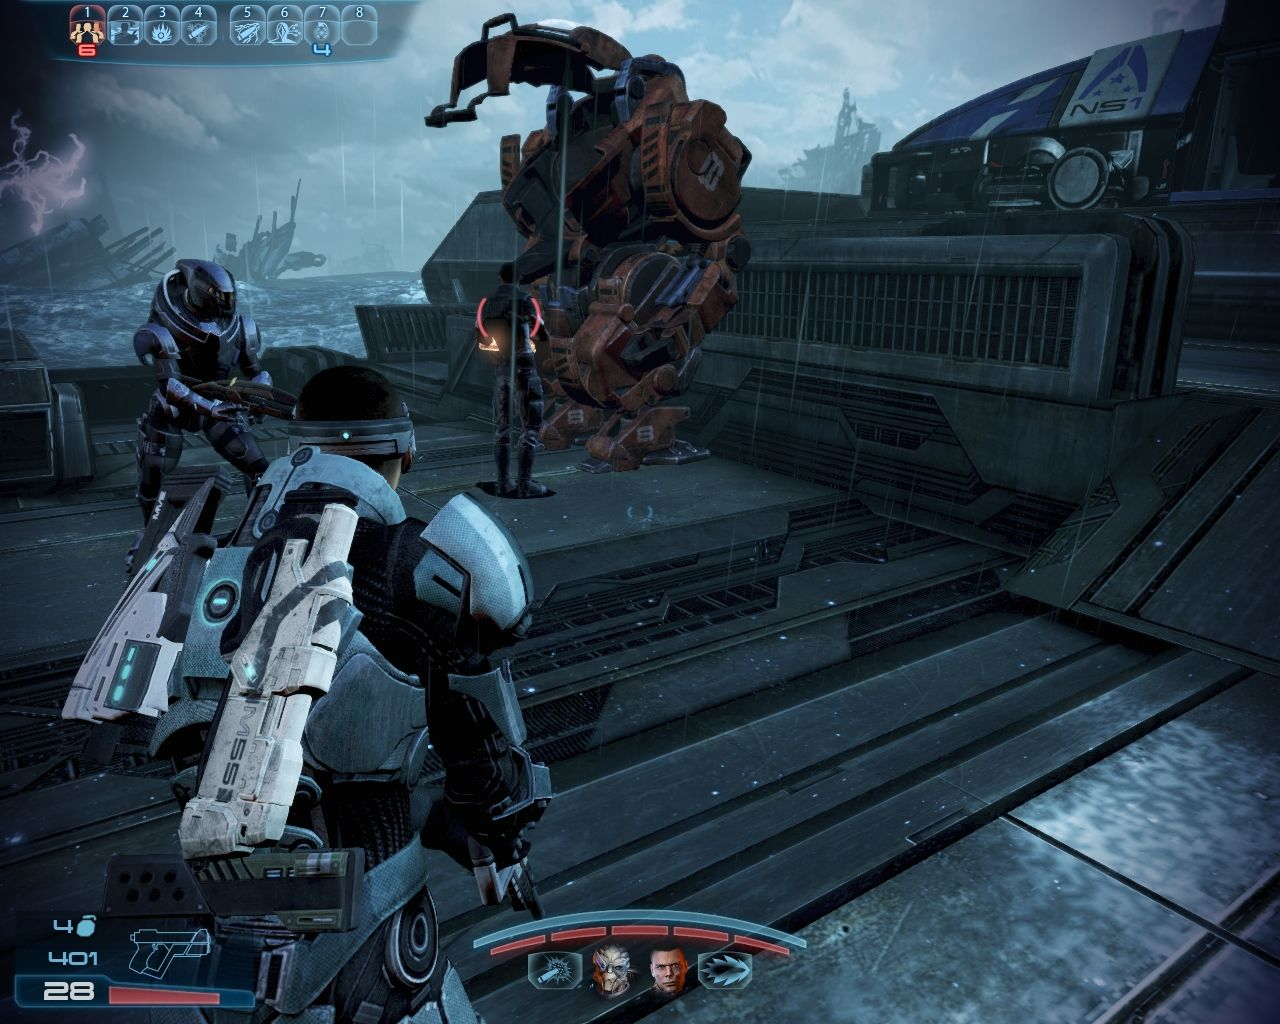 Mass Effect 3: Leviathan Windows The mech is getting checked out by Cortez.